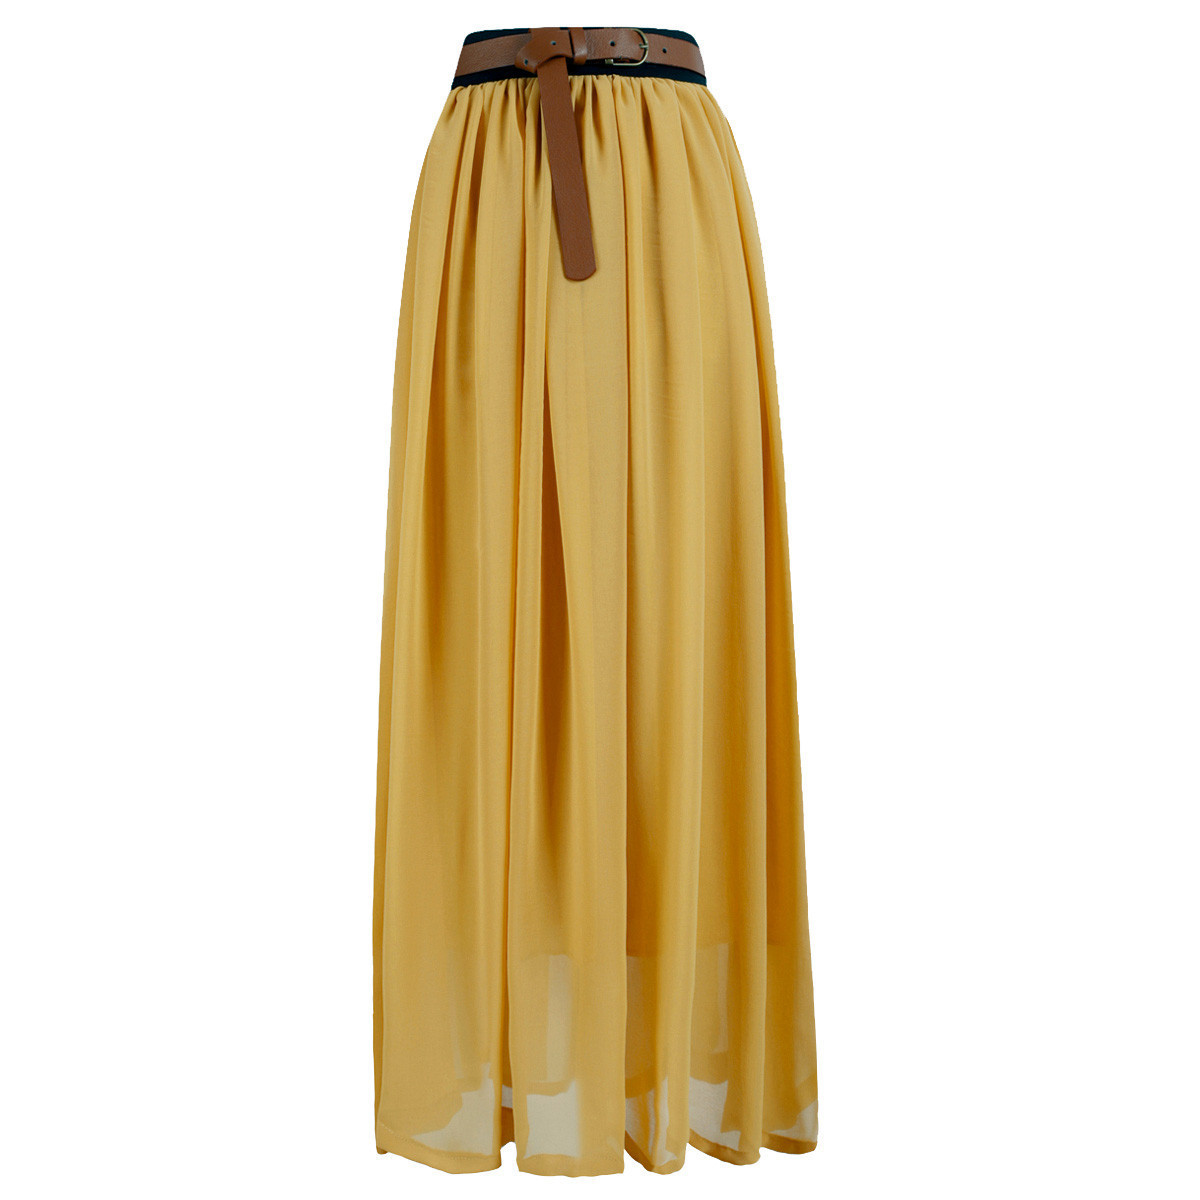 Hot Women Double Layer Chiffon Pleated Retro Long Maxi Dress Elastic Waist Skirt | eBay